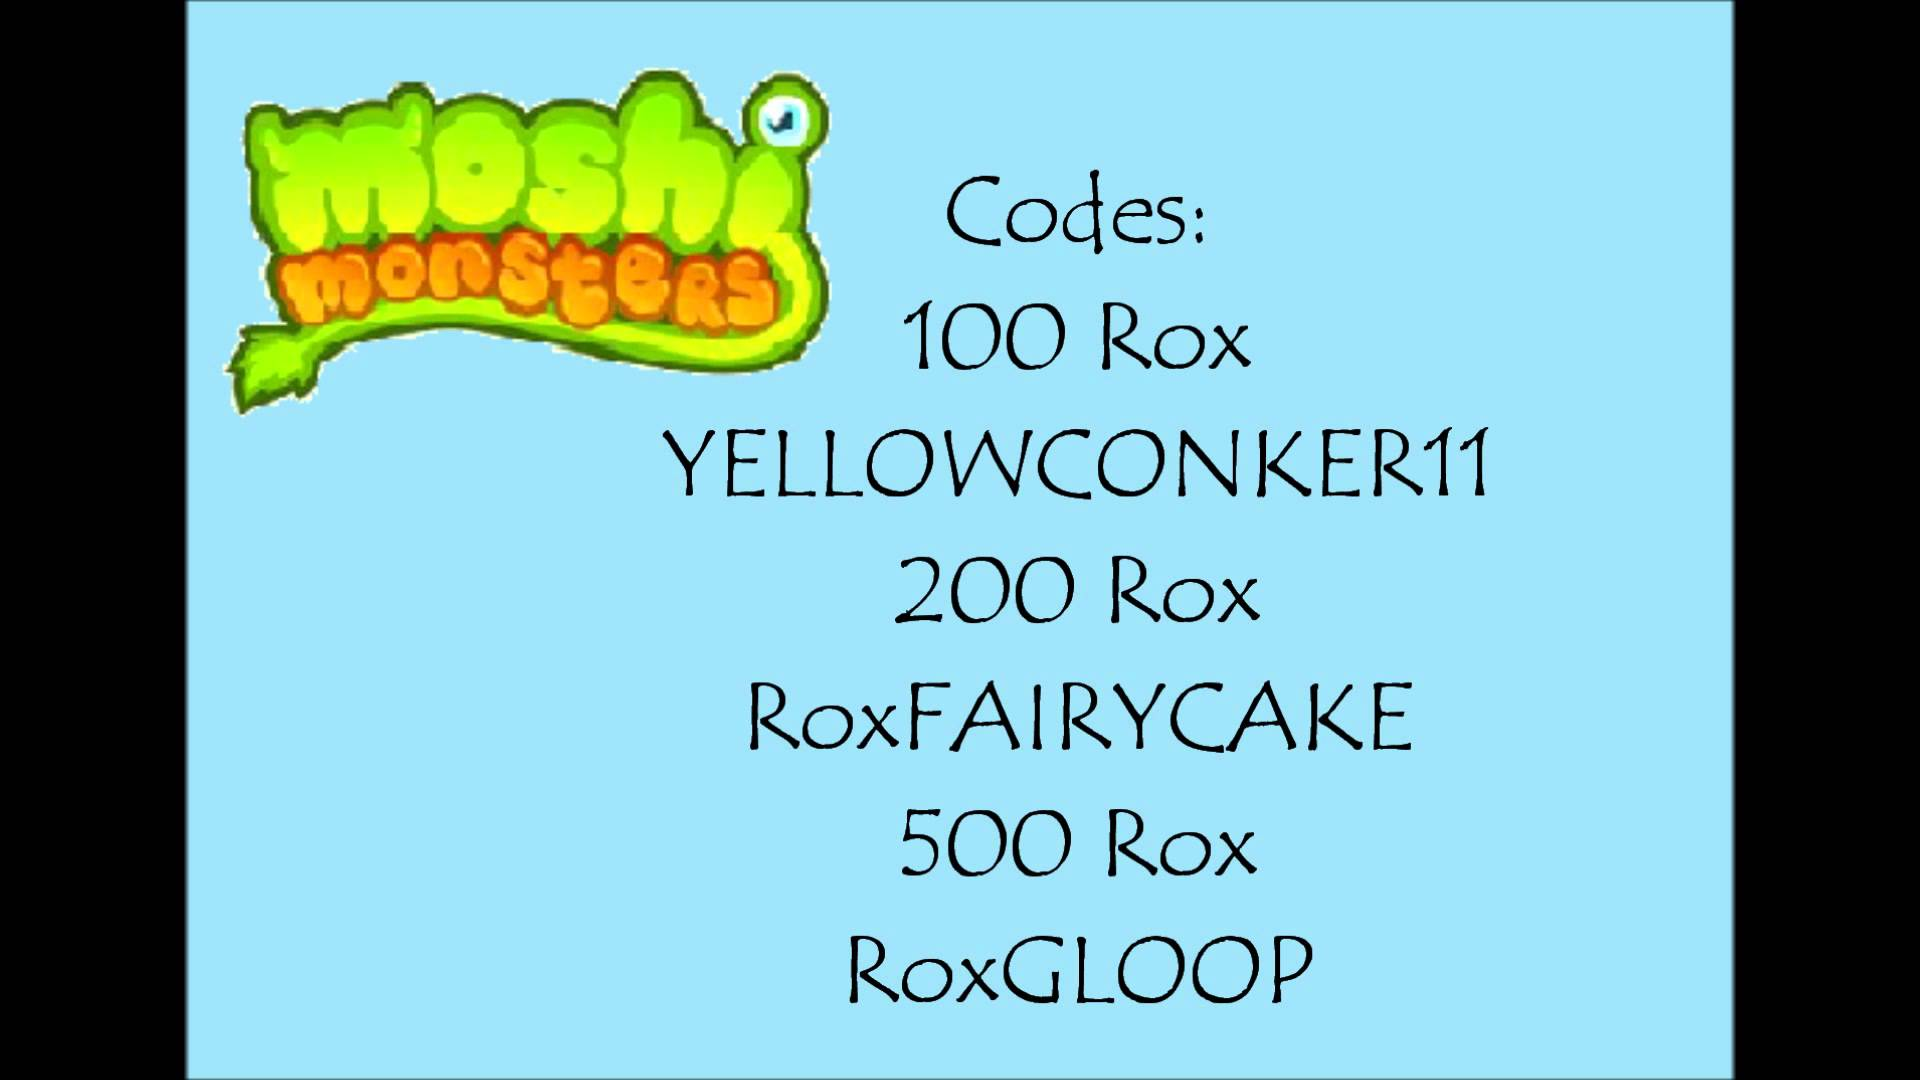 how to put codes in moshi monsters